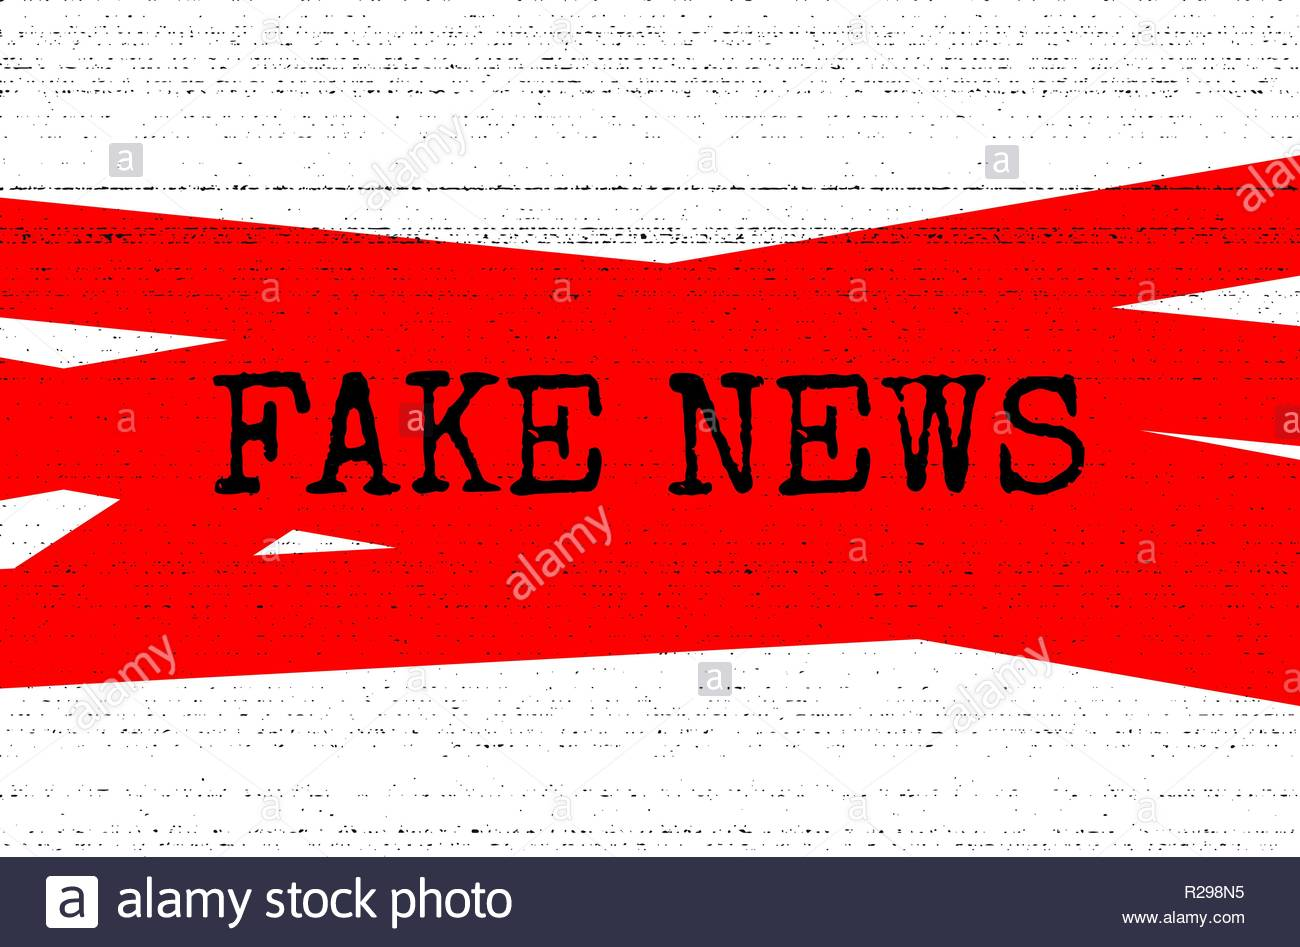 Fake news concept. Red, black and white vector illustration with grunge photocopy texture. Can be used as a banner or background in social media. - Stock Image